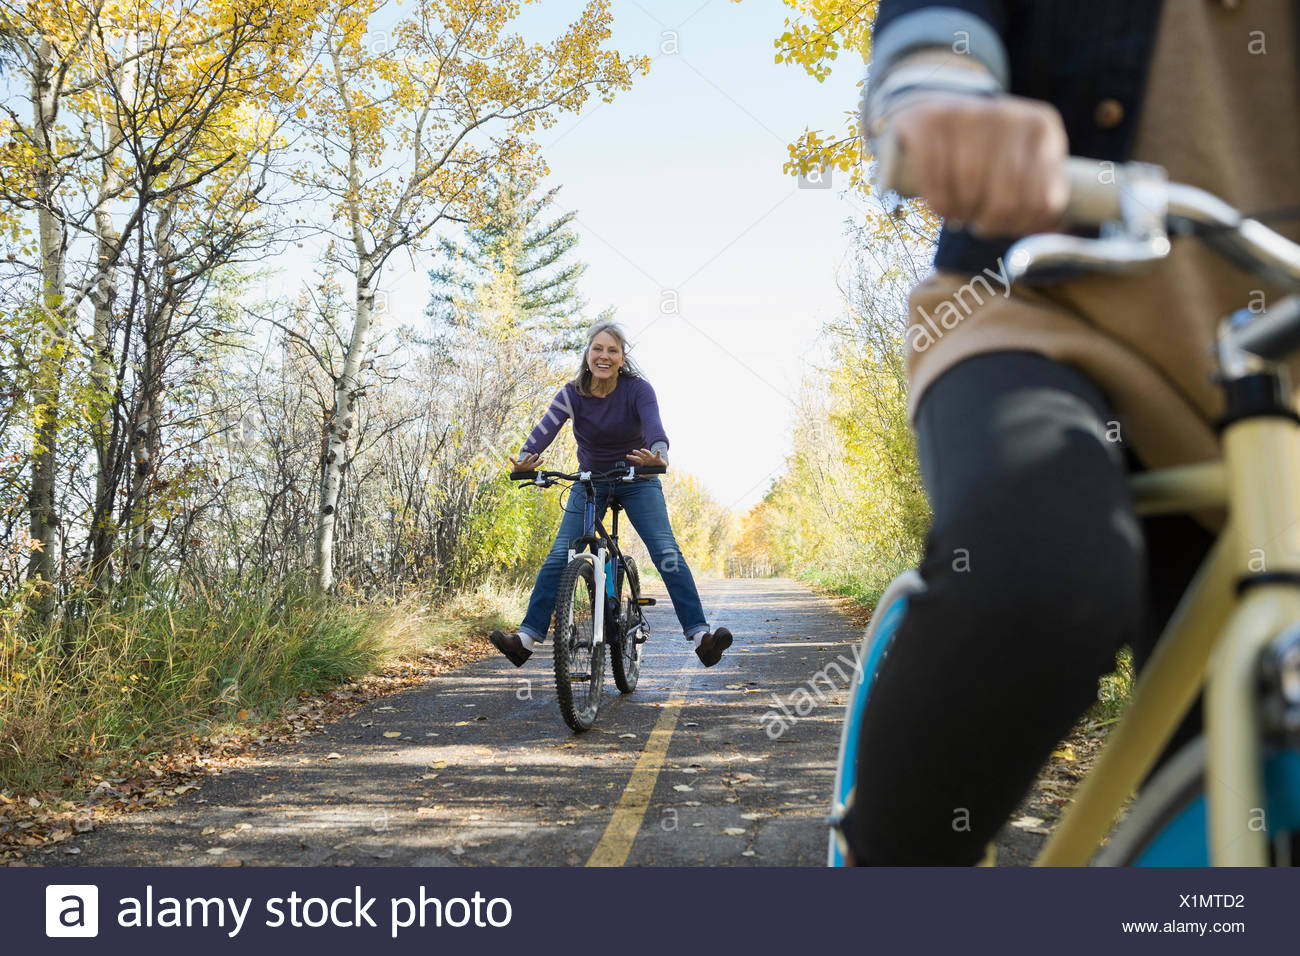 Carefree woman riding bike with legs apart - Stock Image